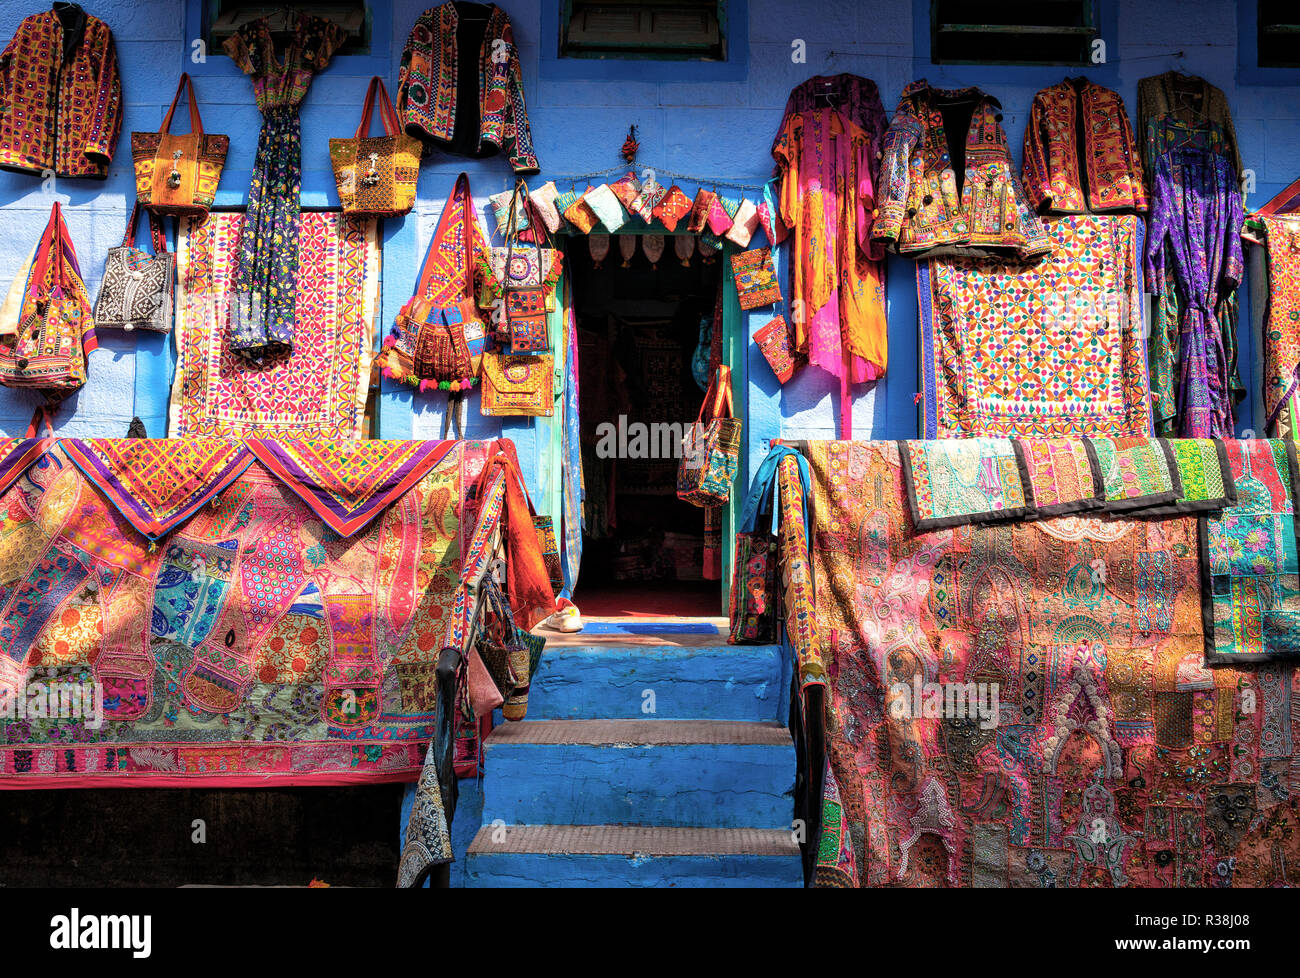 A typical shop front in Jpdhpur India Stock Photo